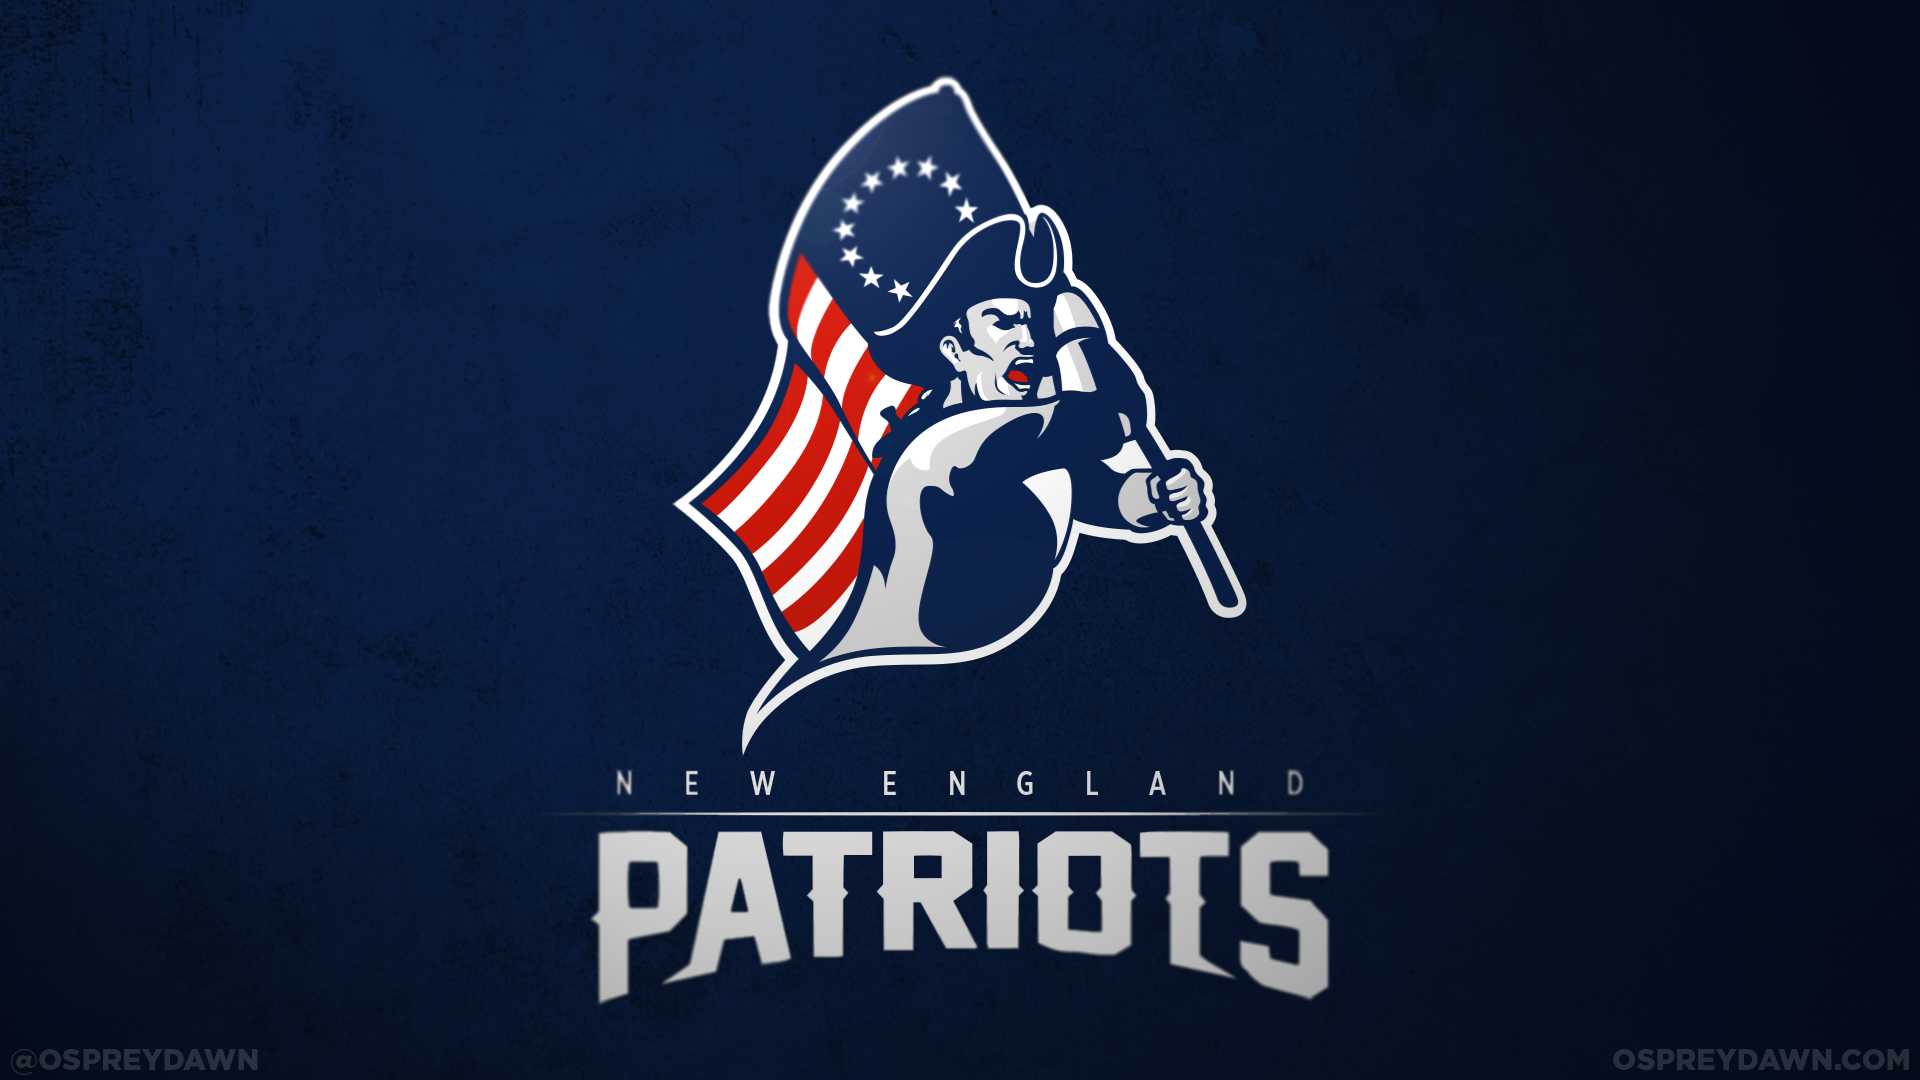 New England Patriots Wallpapers New England Patriots Wallpapers